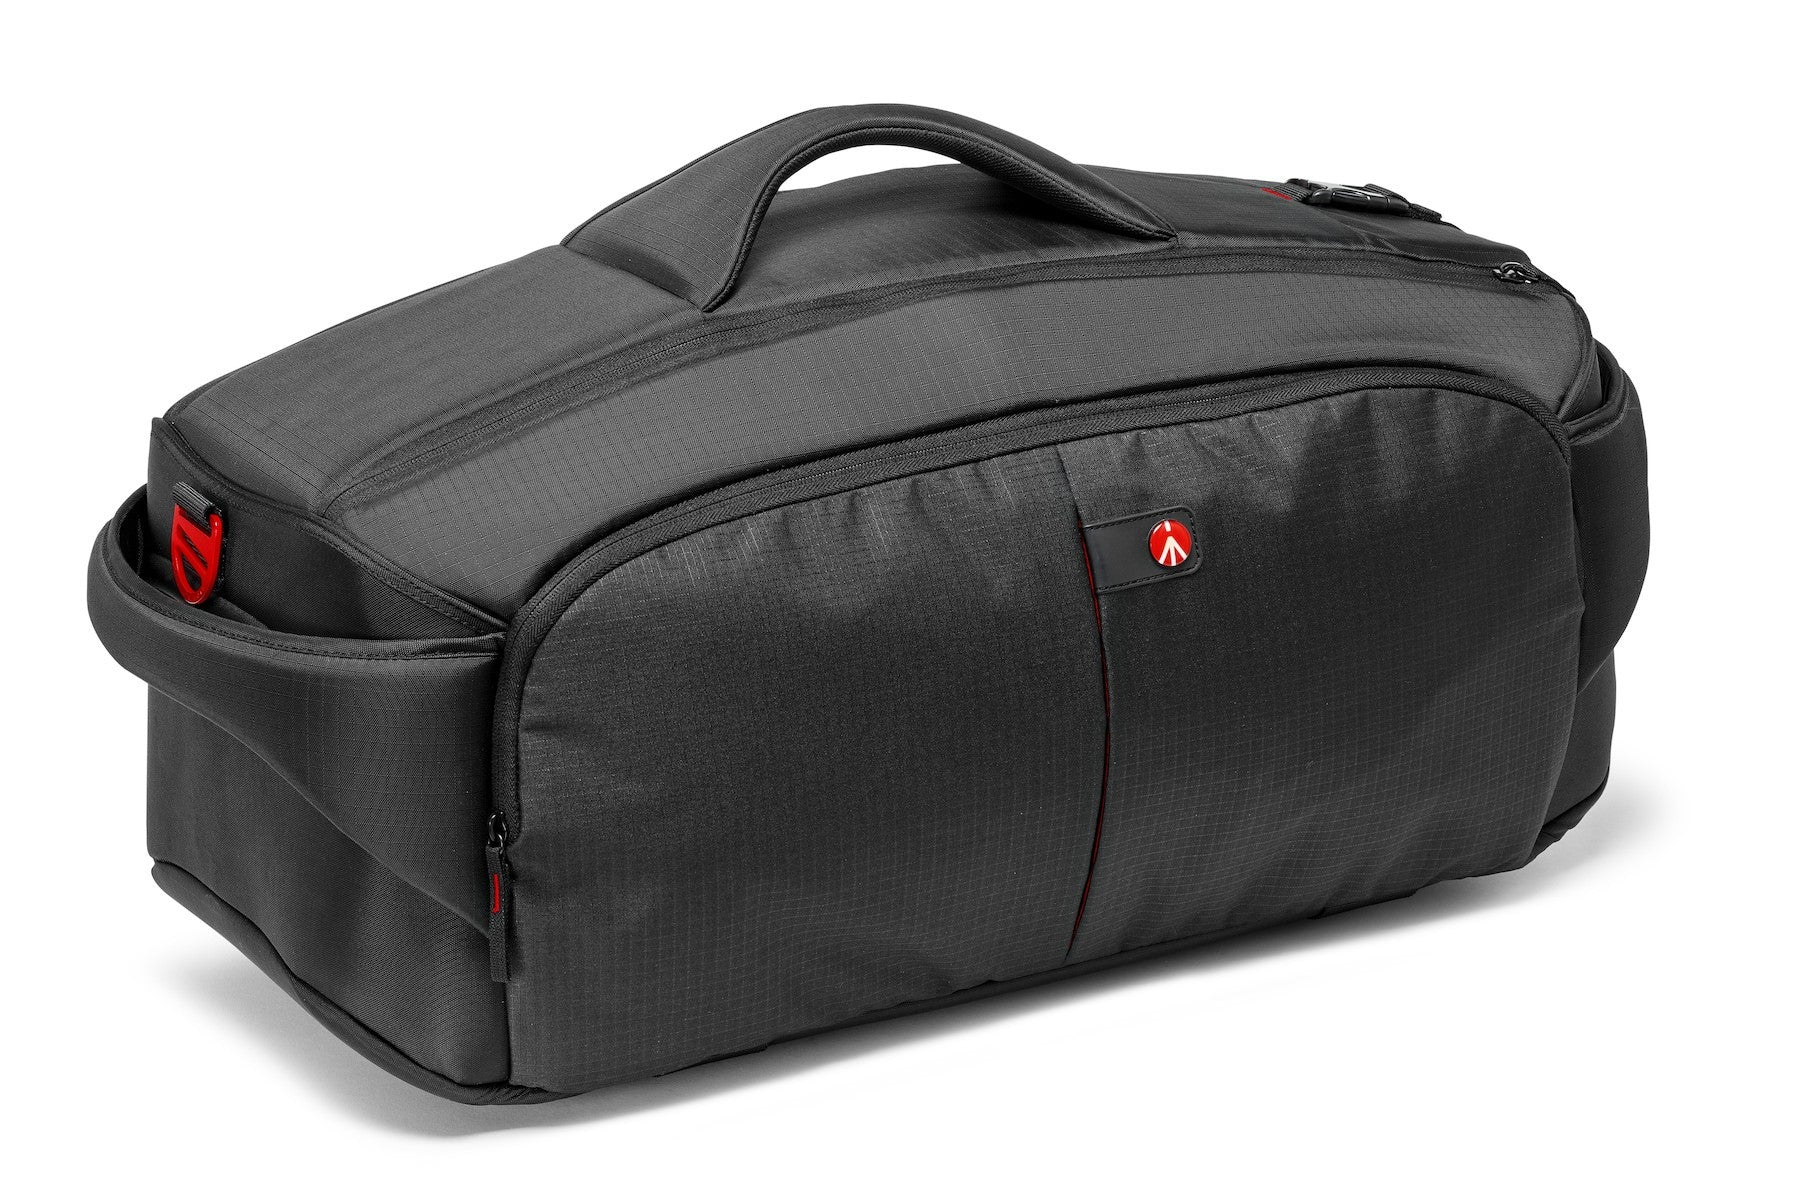 Manfrotto Pro Light Camcorder Case 197